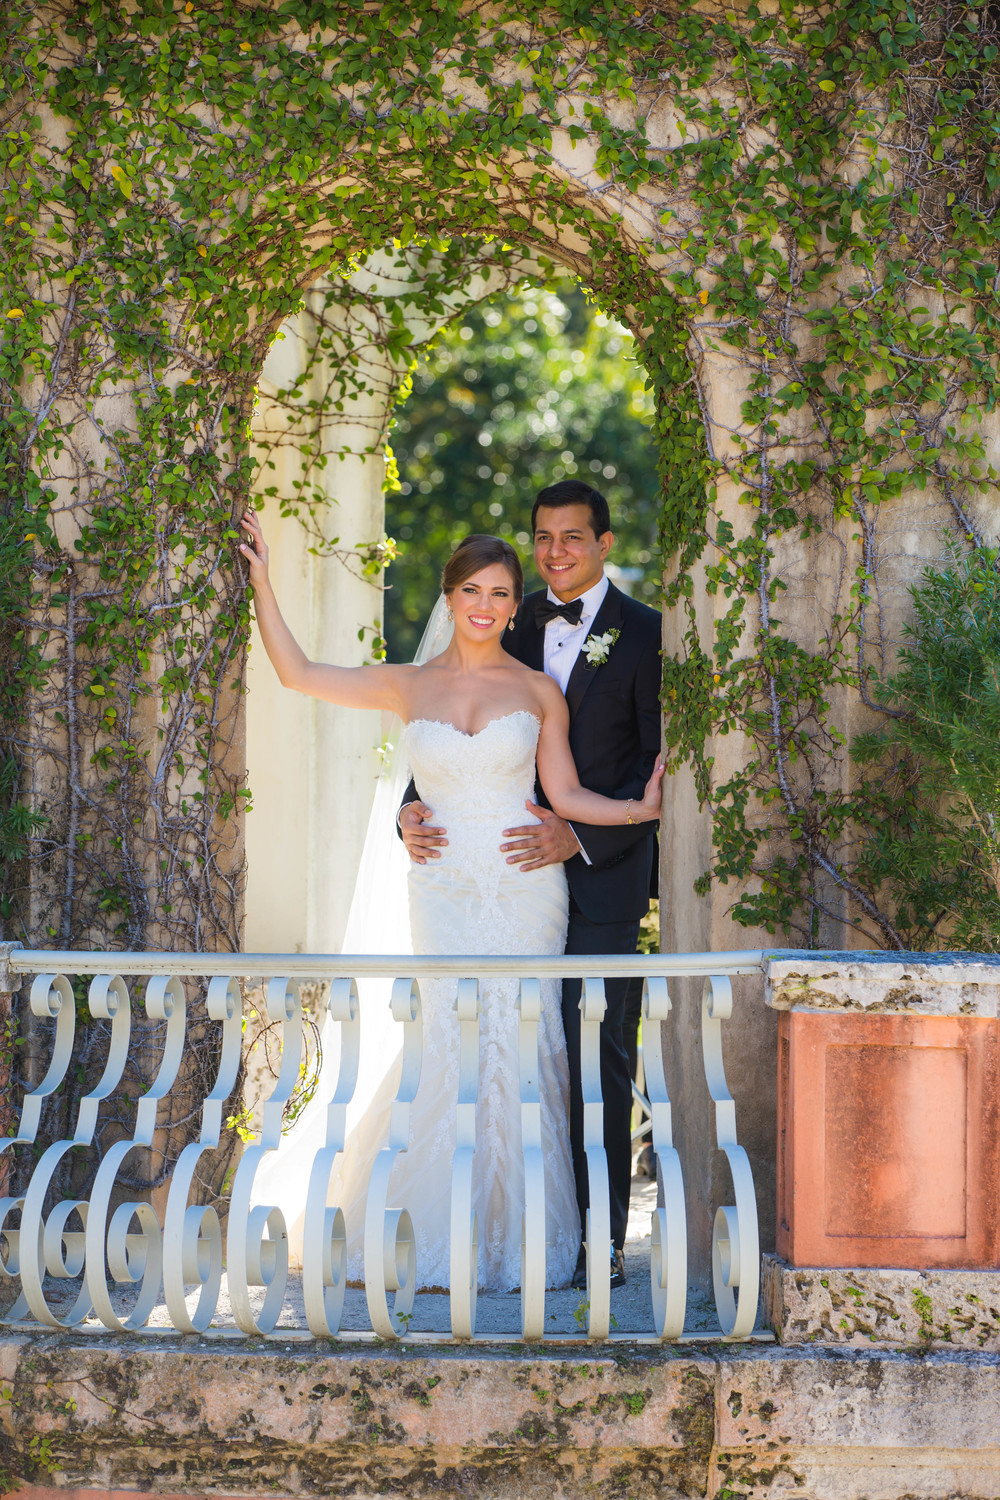 OMAR & NORMALIZ CHACON: WEDDING DAY